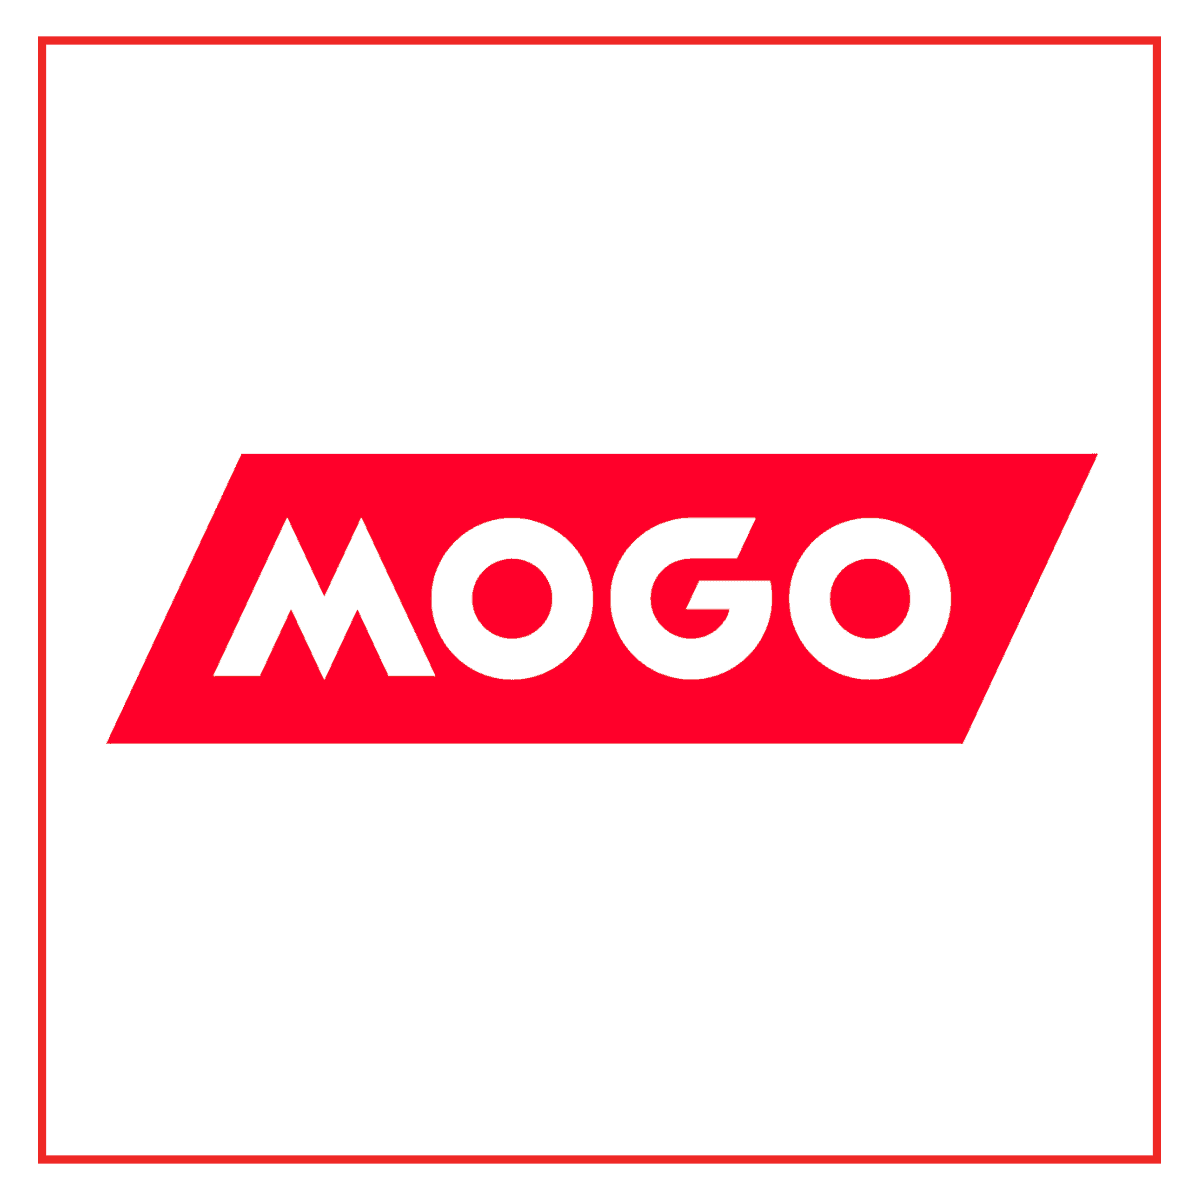 Mogo Acquires Moka in a 64-Million All-Stock Transaction